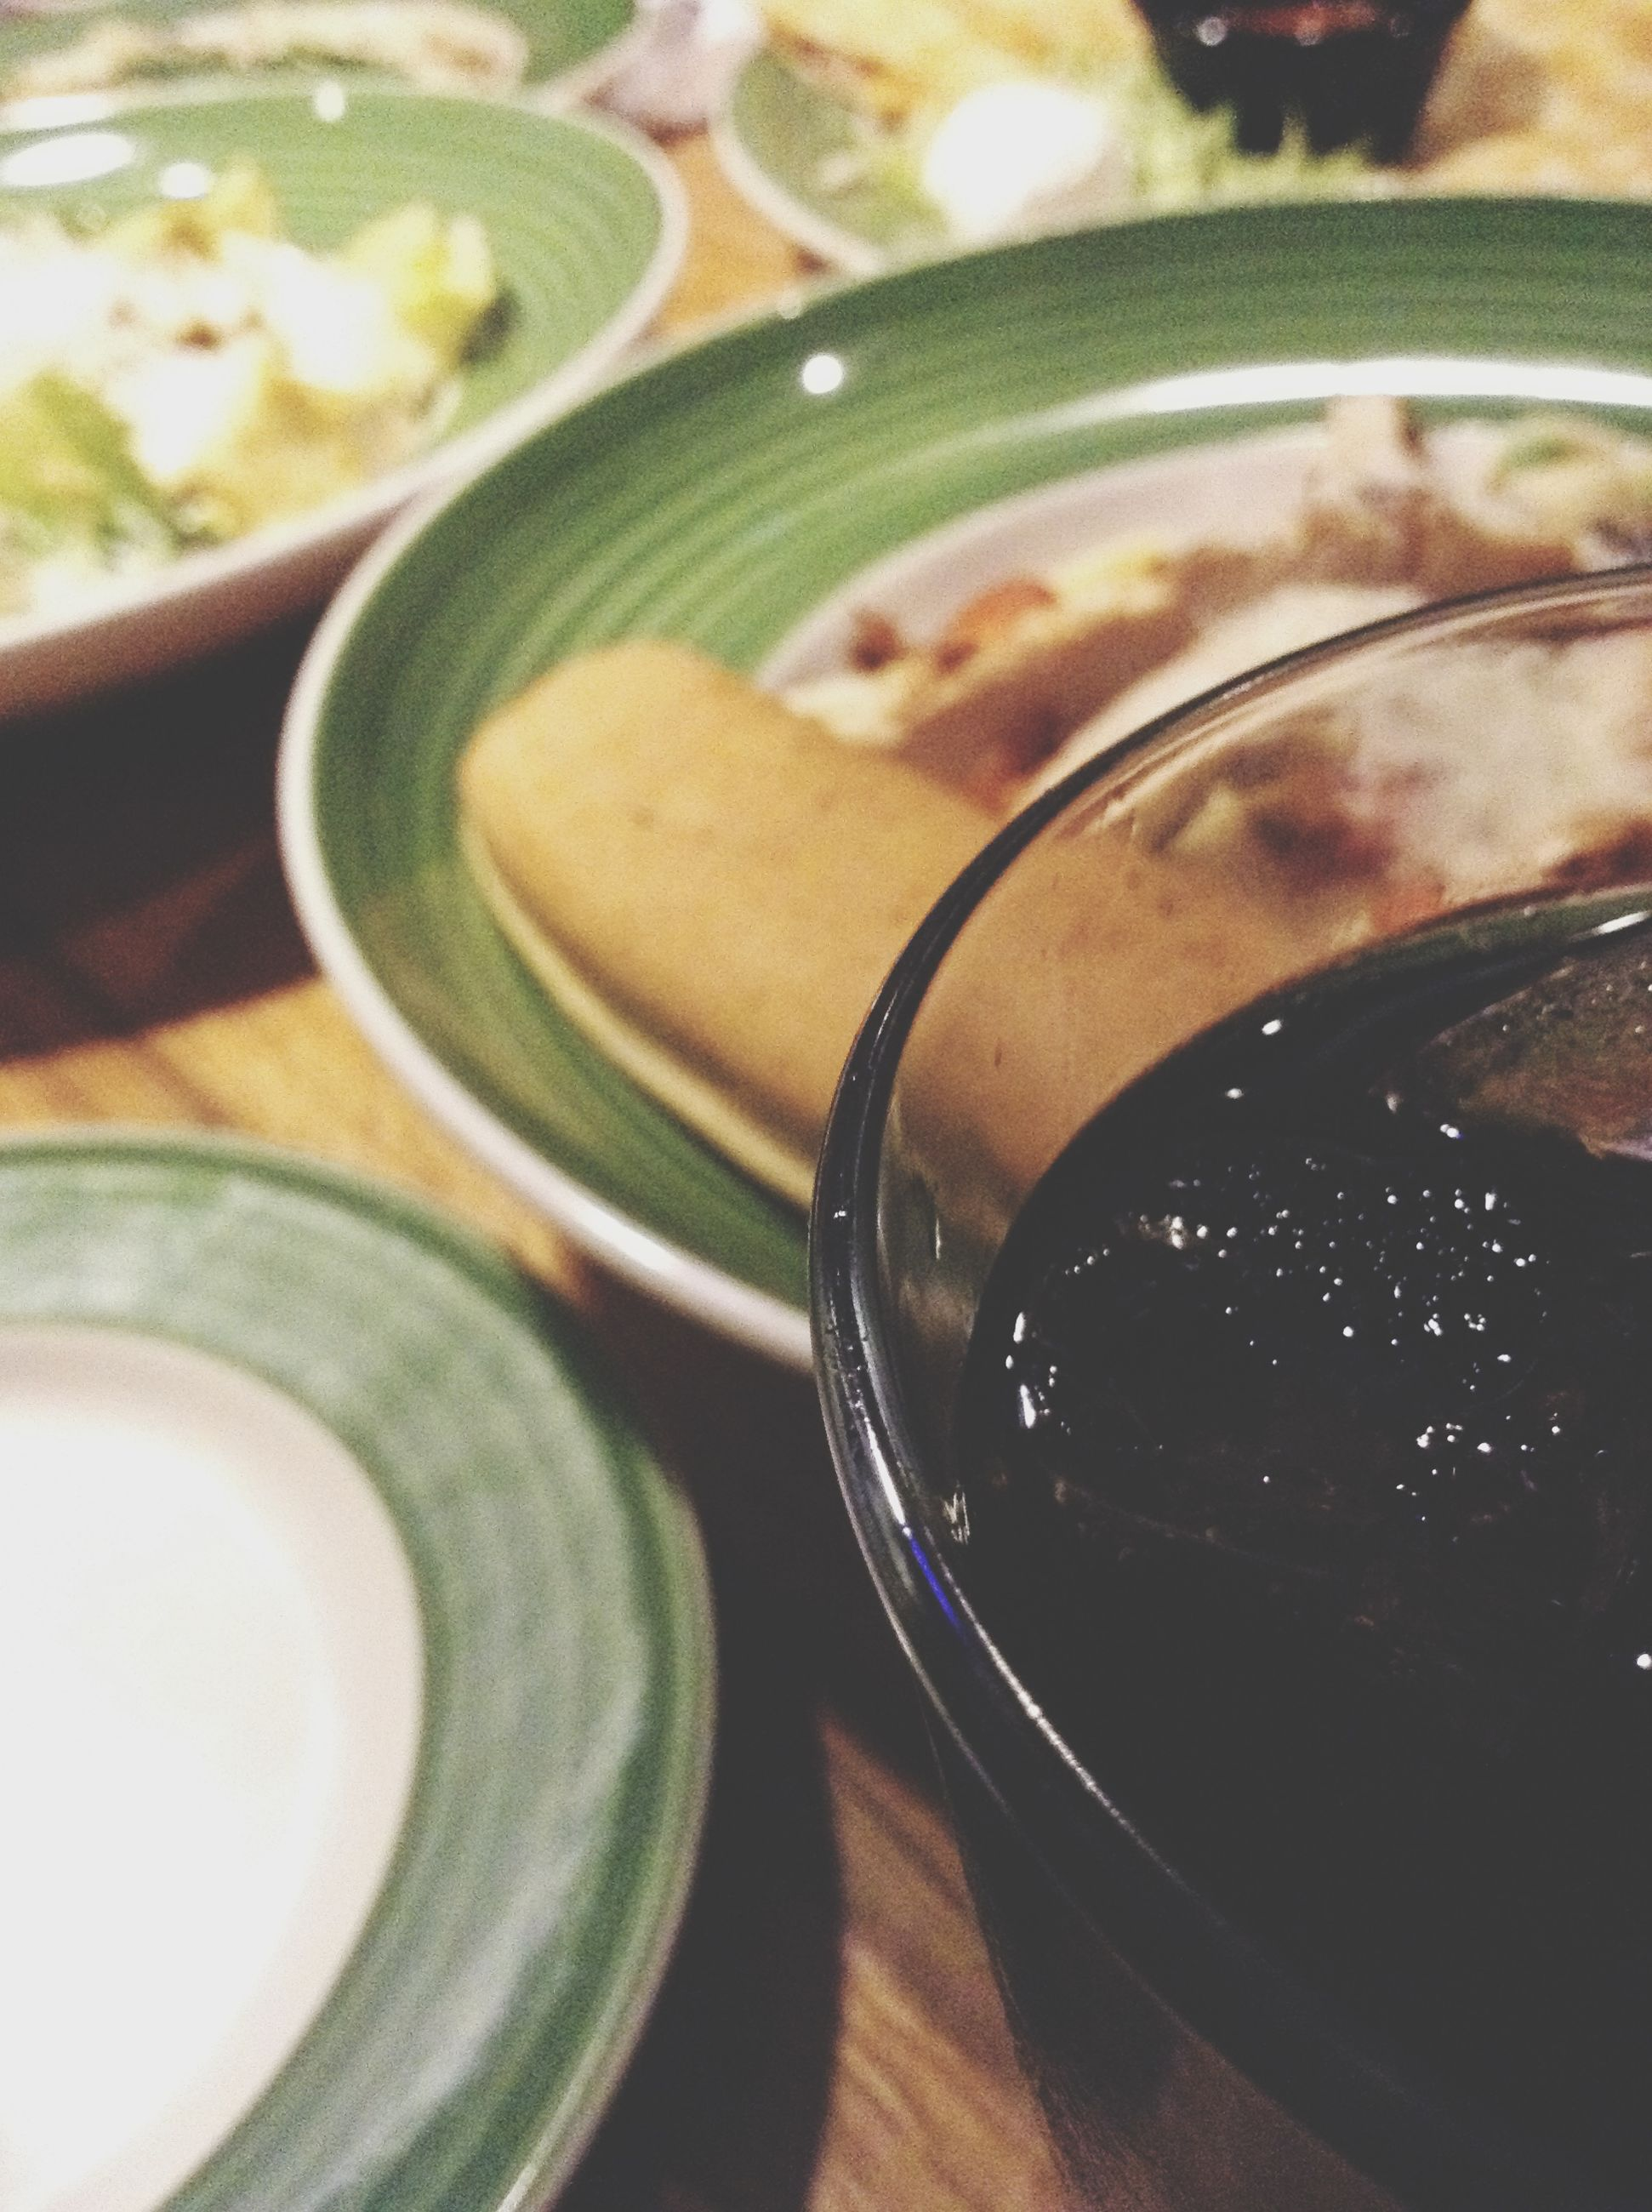 indoors, food and drink, table, drink, still life, close-up, refreshment, freshness, drinking glass, high angle view, glass - material, selective focus, focus on foreground, food, spoon, healthy eating, no people, bowl, coffee cup, transparent